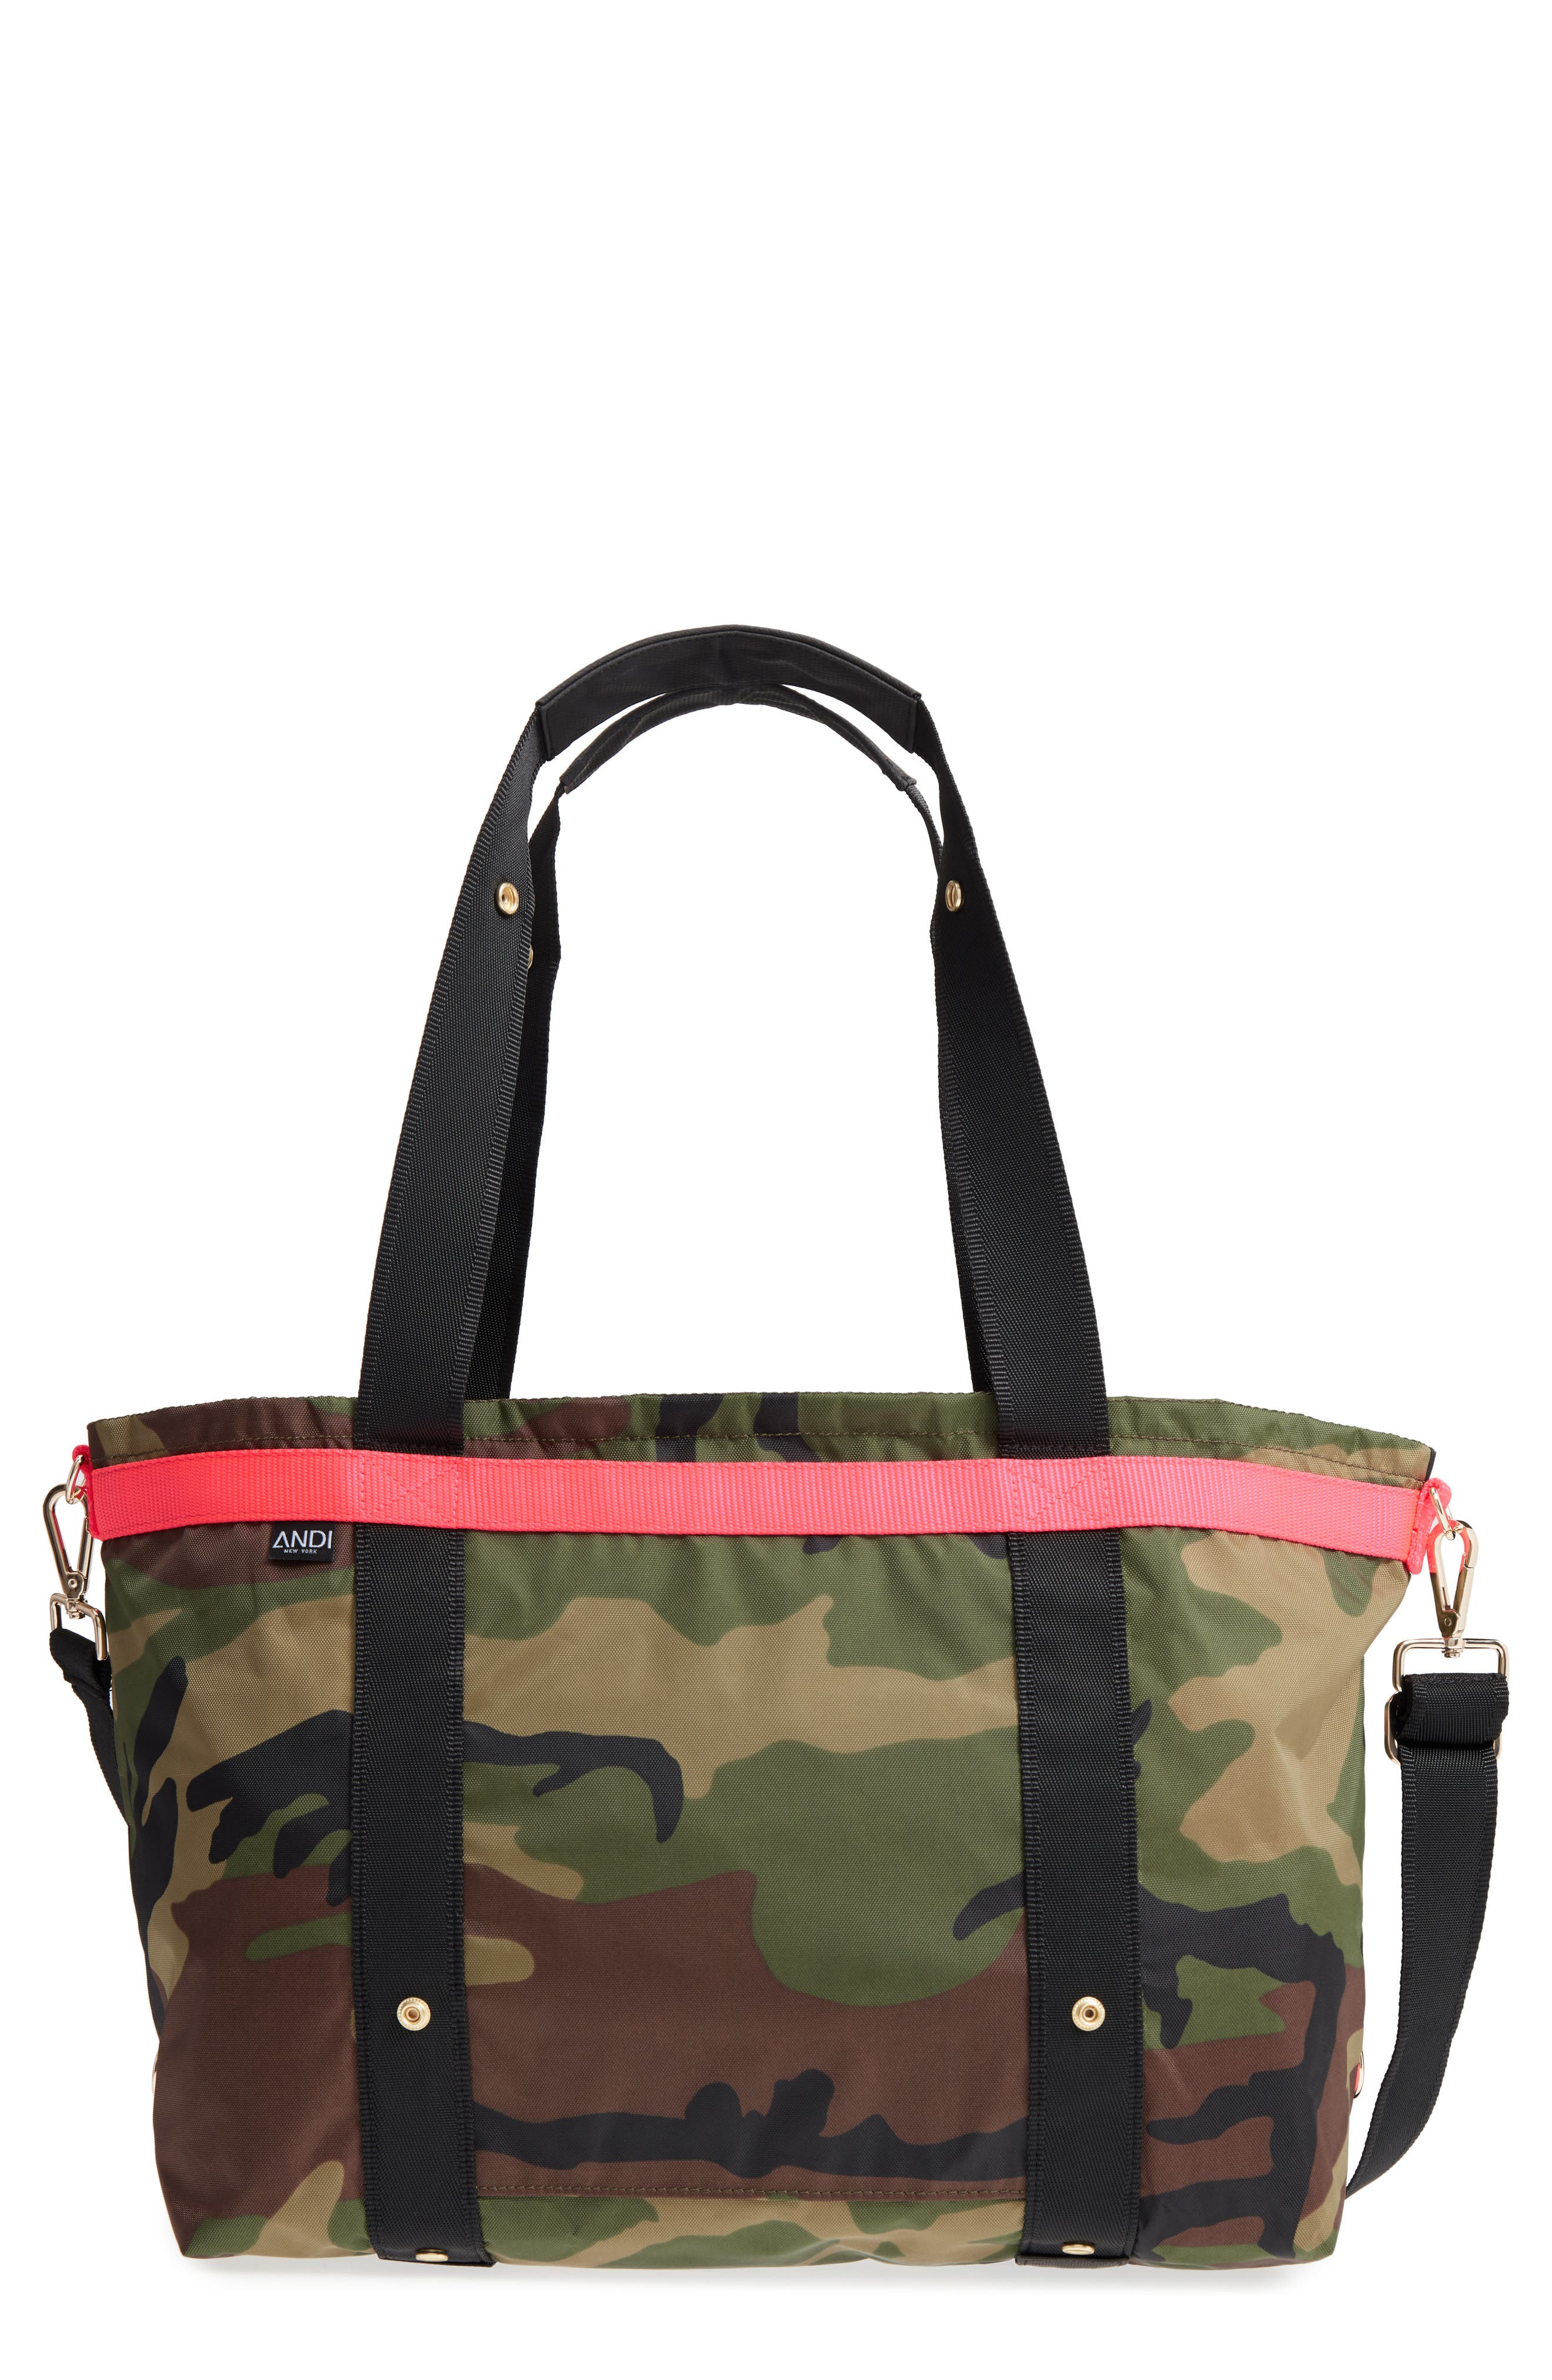 ANDI Camo Convertible Tote - Green in Woodland Camouflage/ Hot Pink